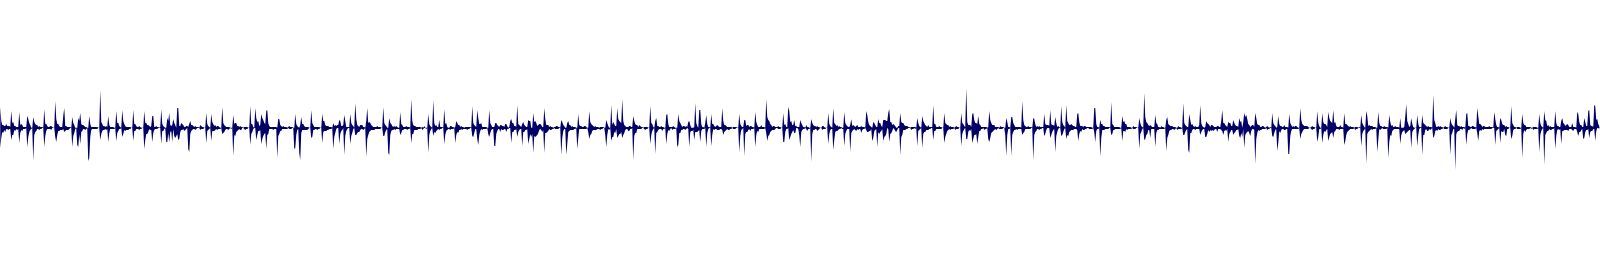 waveform of track #129695